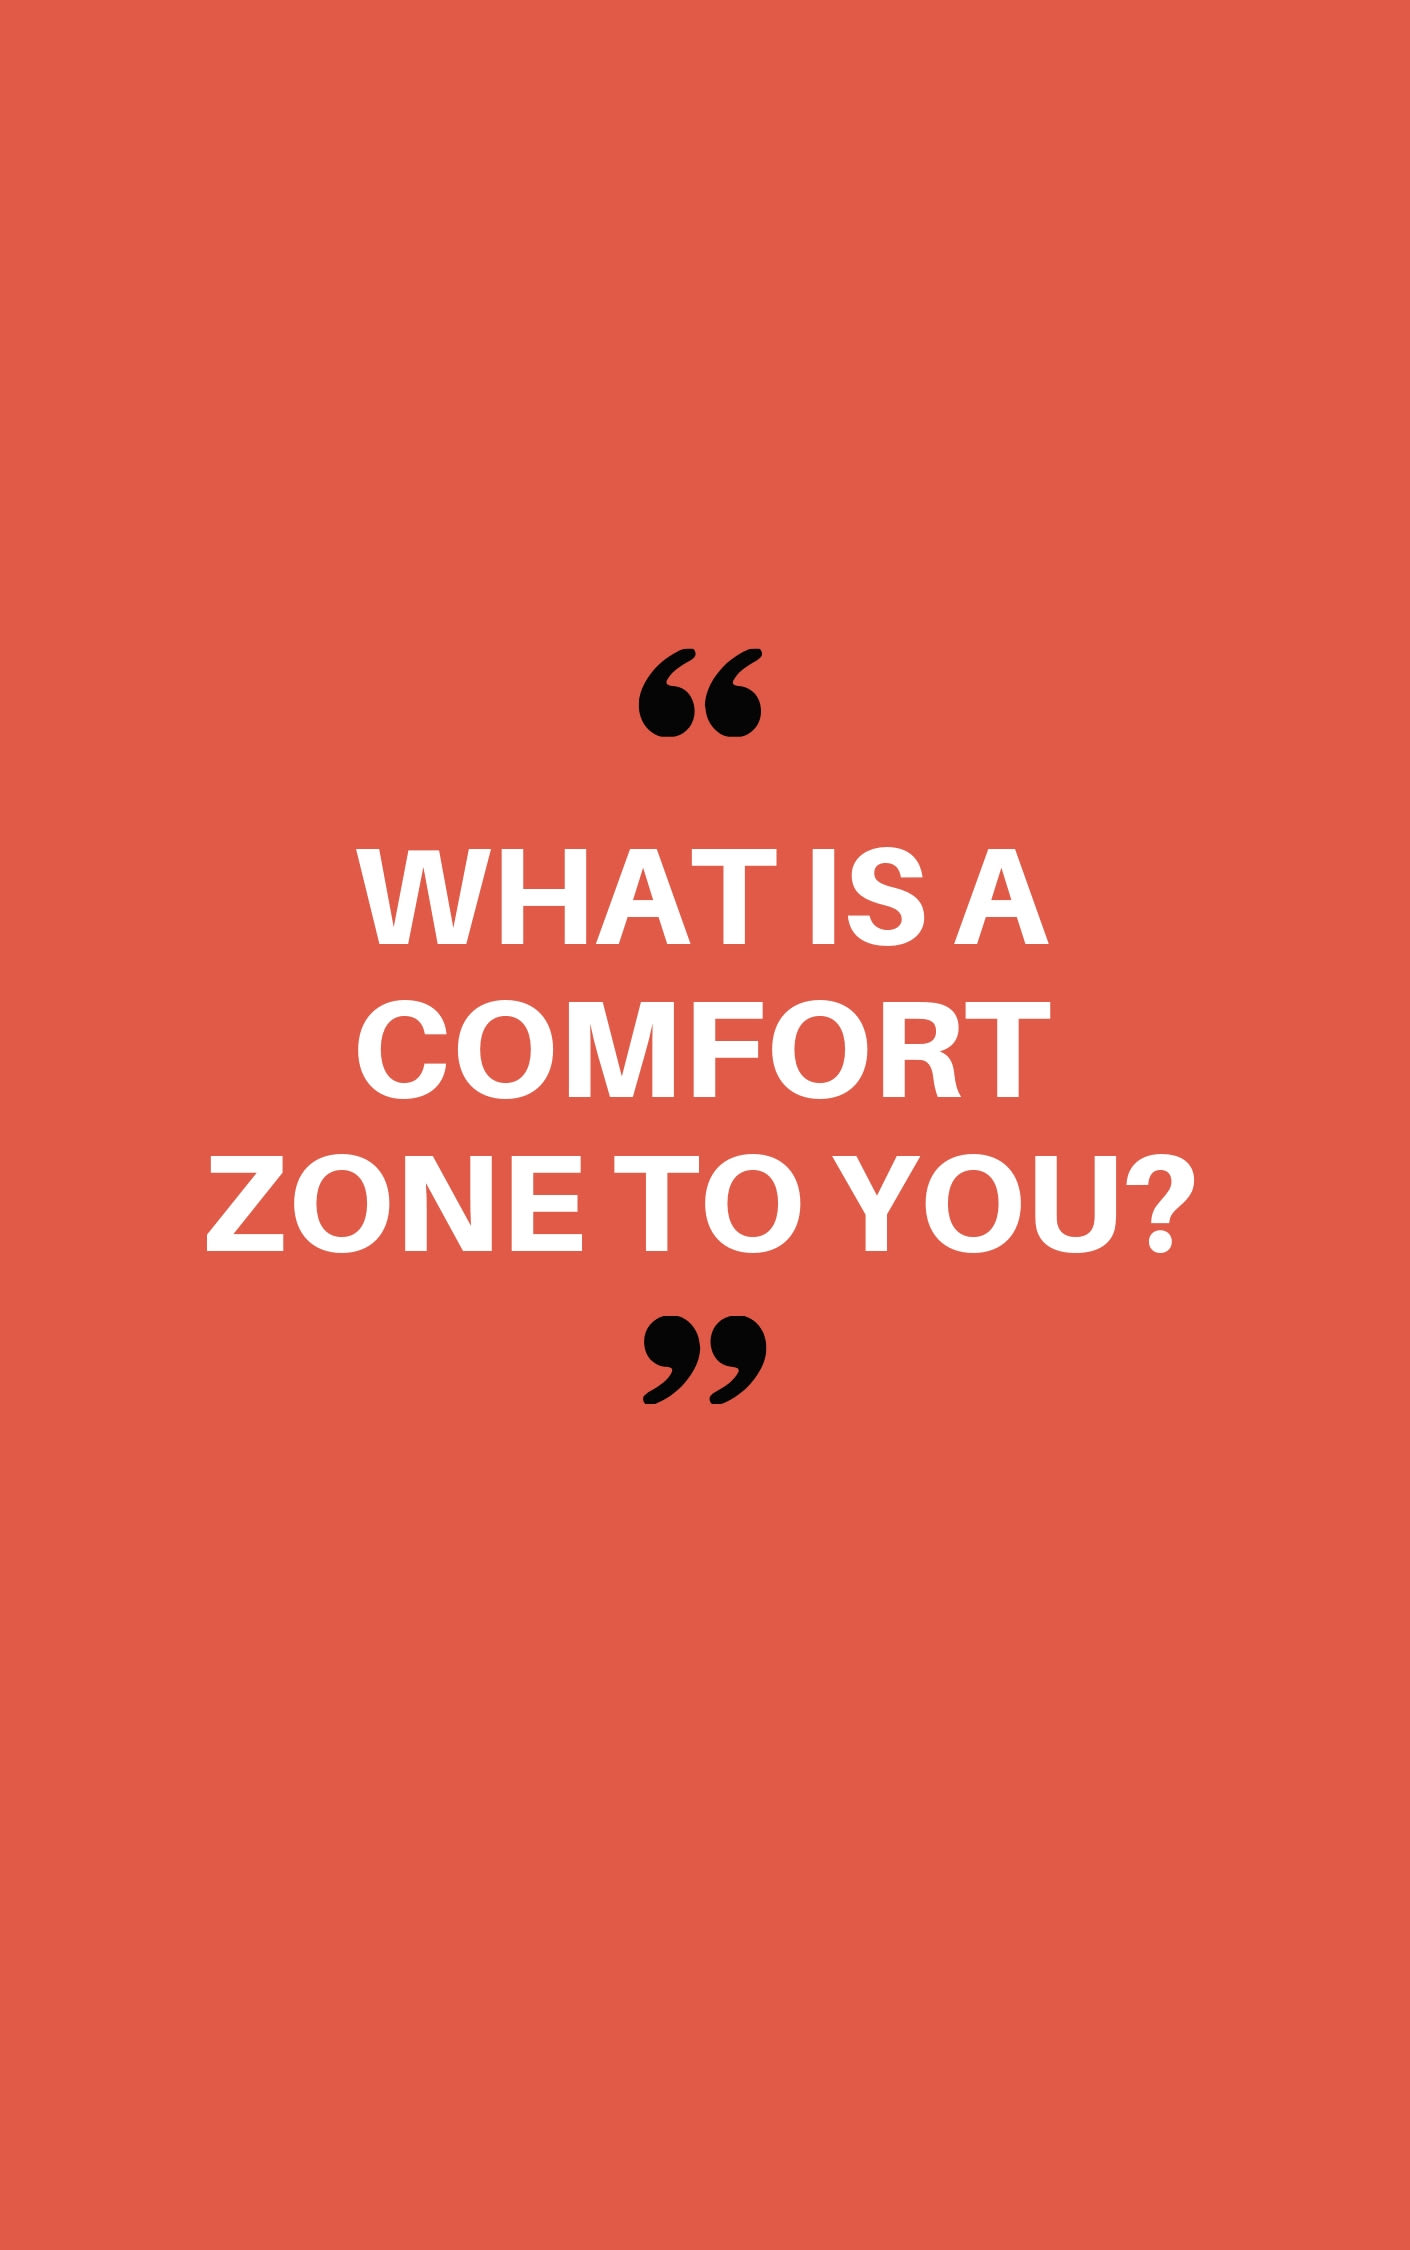 what-is-a-comfort-zone-to-you